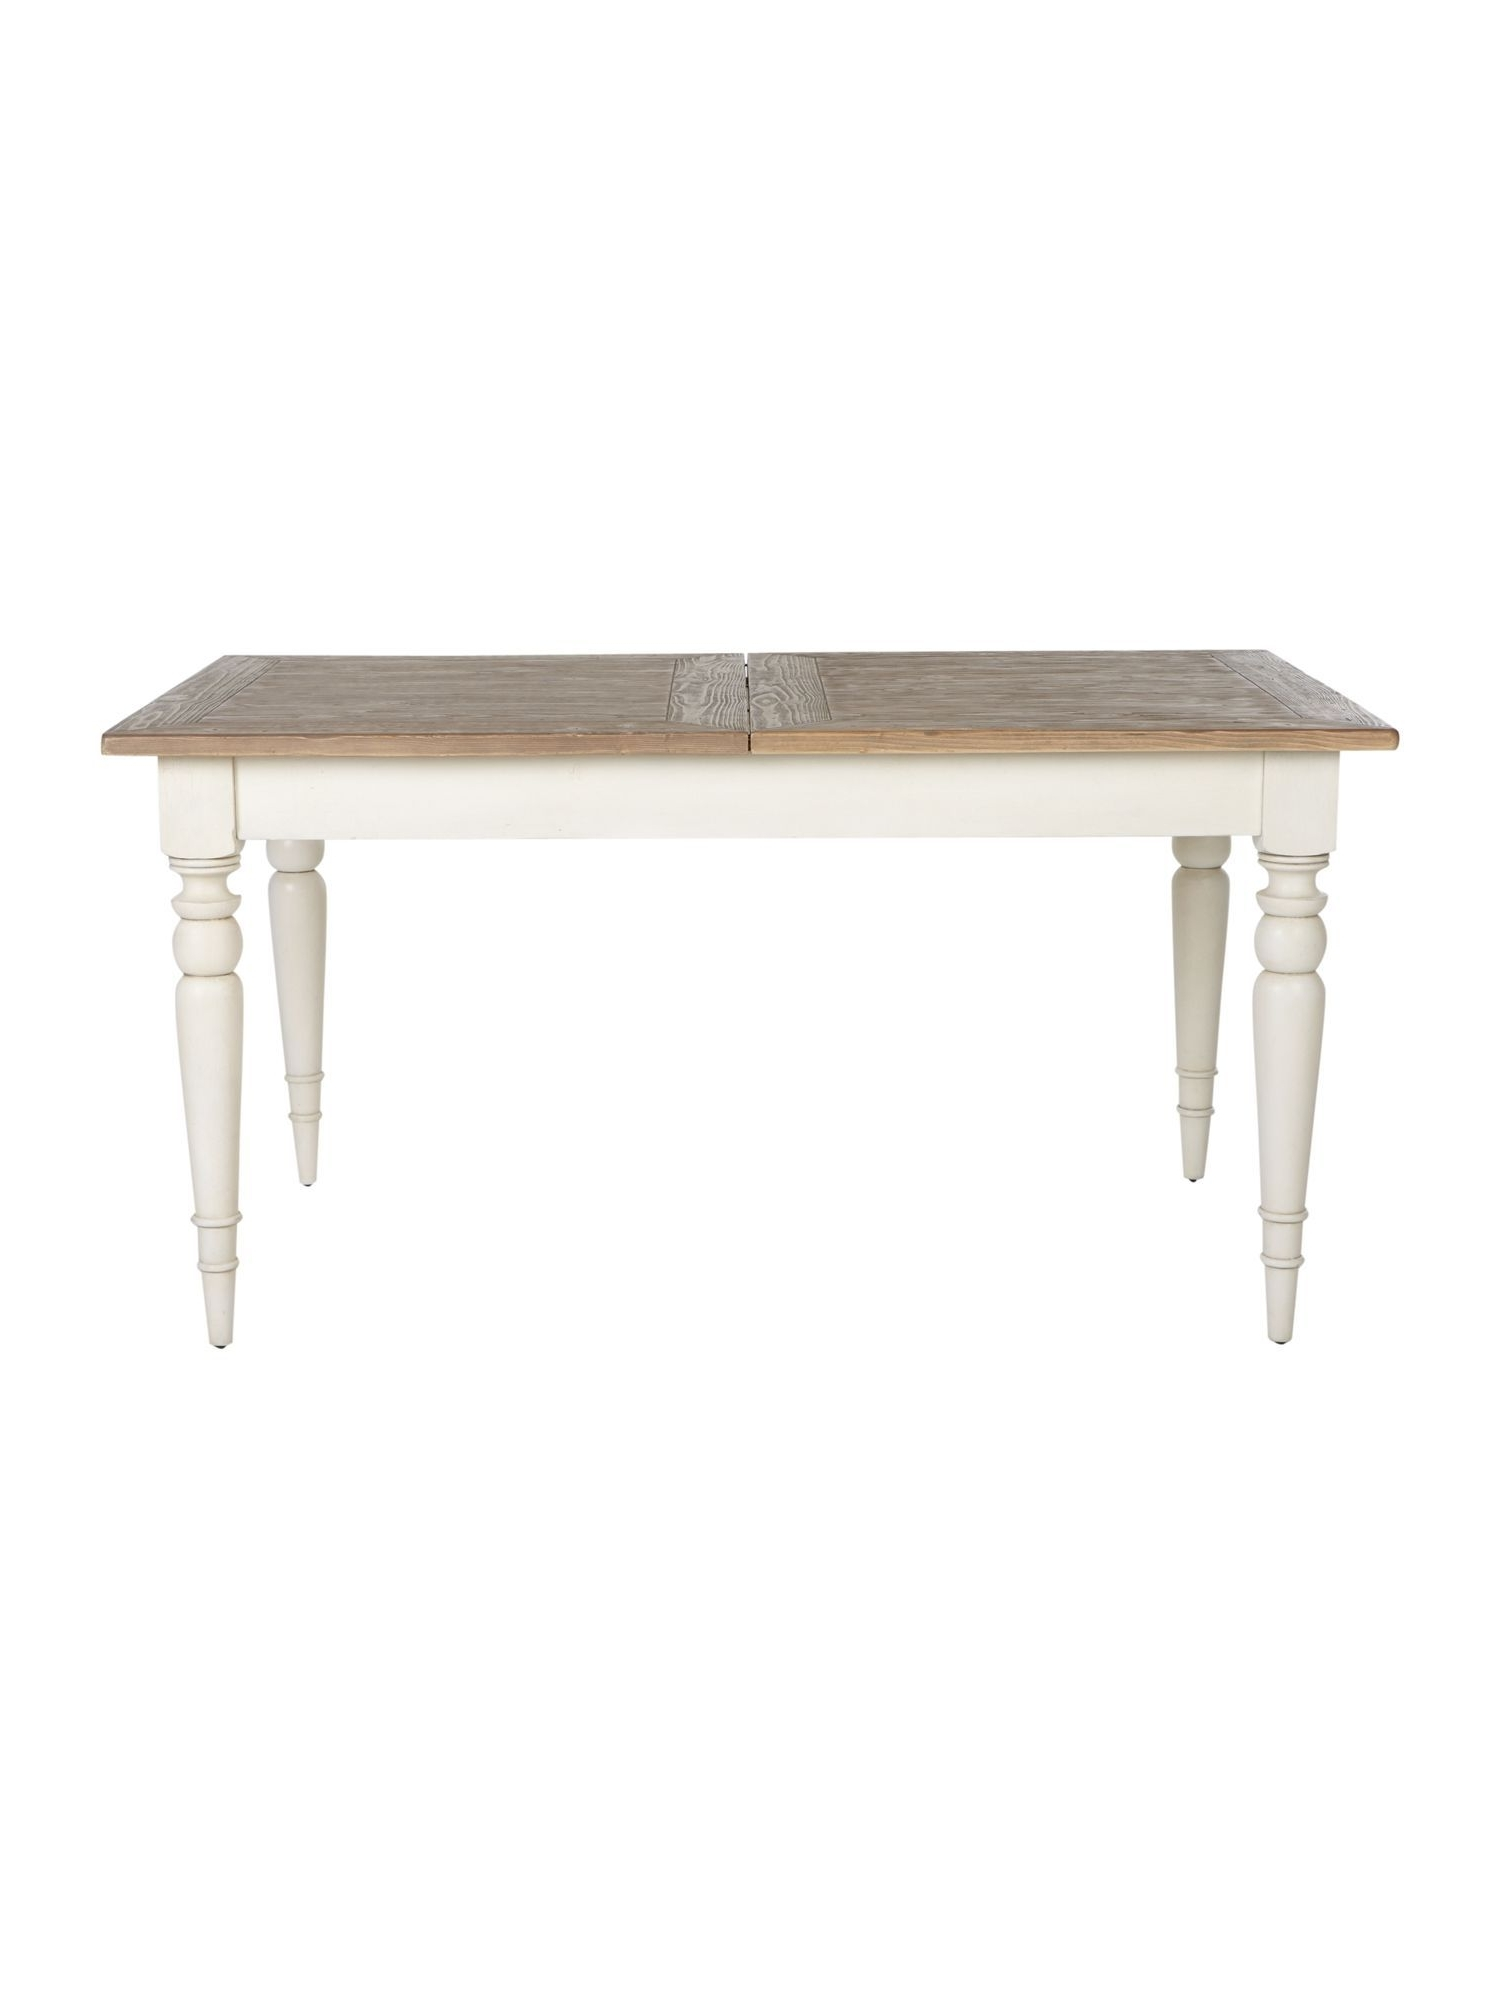 Shabby Chic Willow 155Cm Extending Dining Table – House Of Fraser Intended For Trendy Shabby Chic Extendable Dining Tables (View 22 of 25)